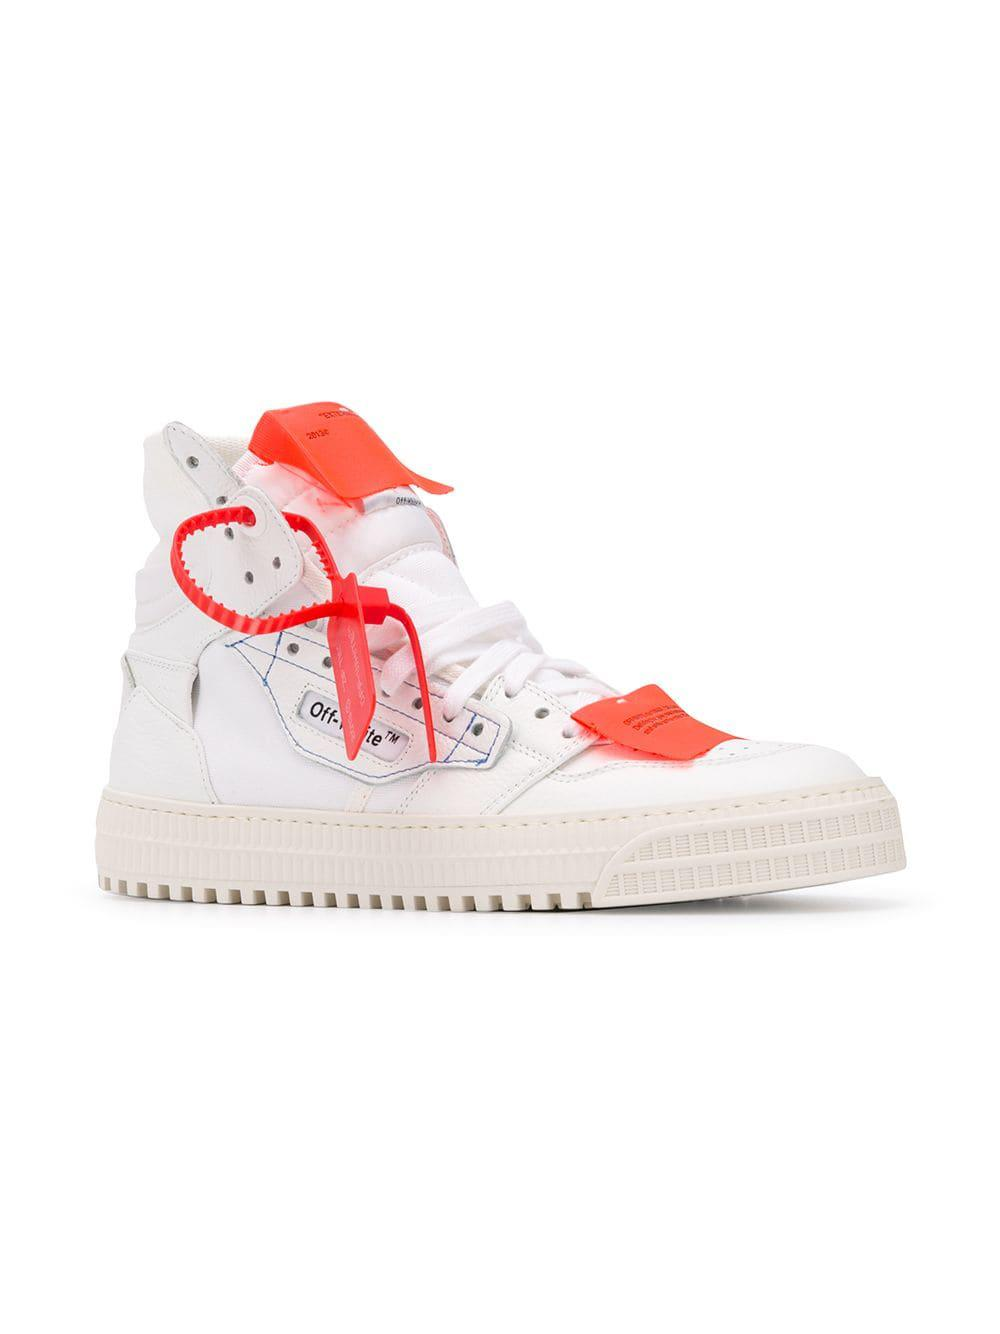 afc939a0247c74 Off-White c/o Virgil Abloh Off-court 3.0 Sneakers in White - Save 16% - Lyst